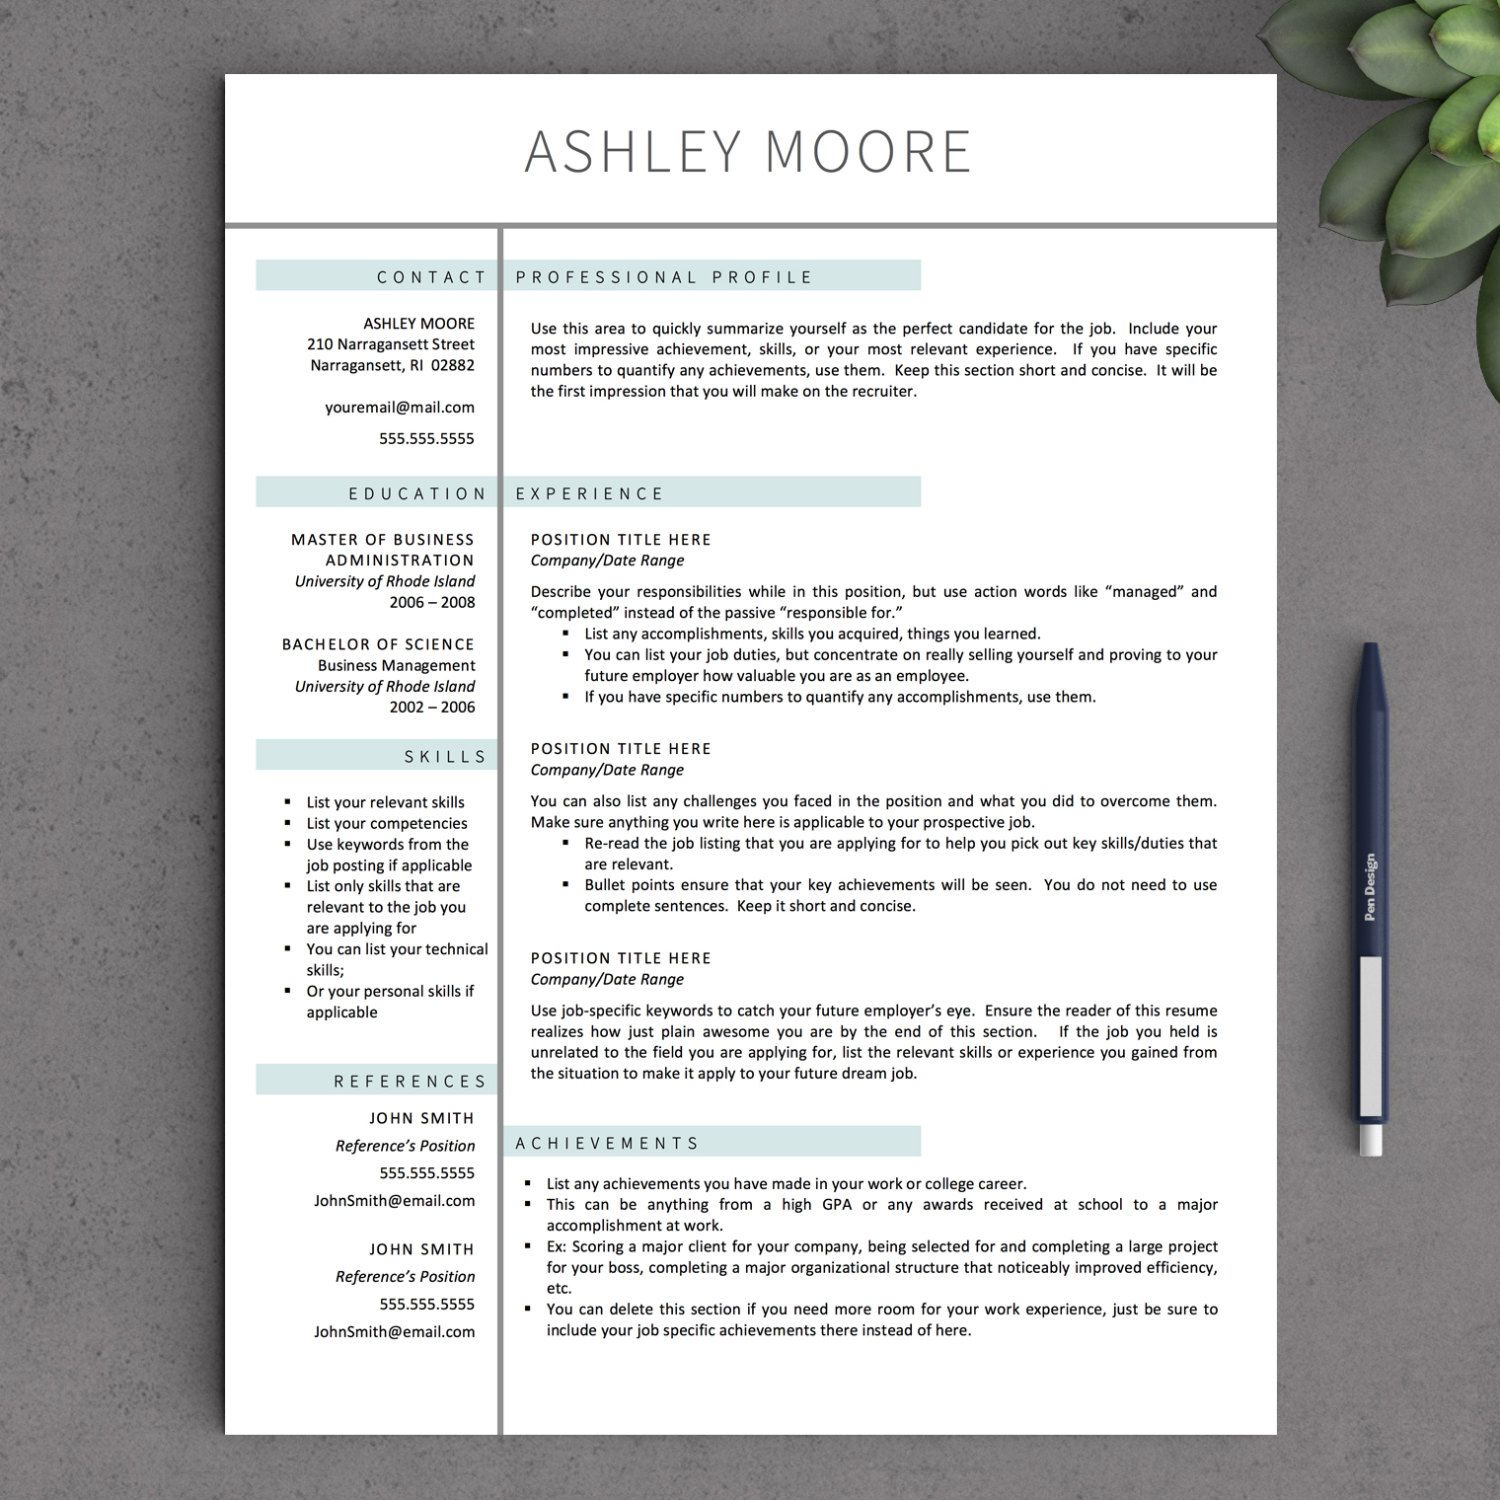 apple pages resume template download apple pages resume template download  apple u2026